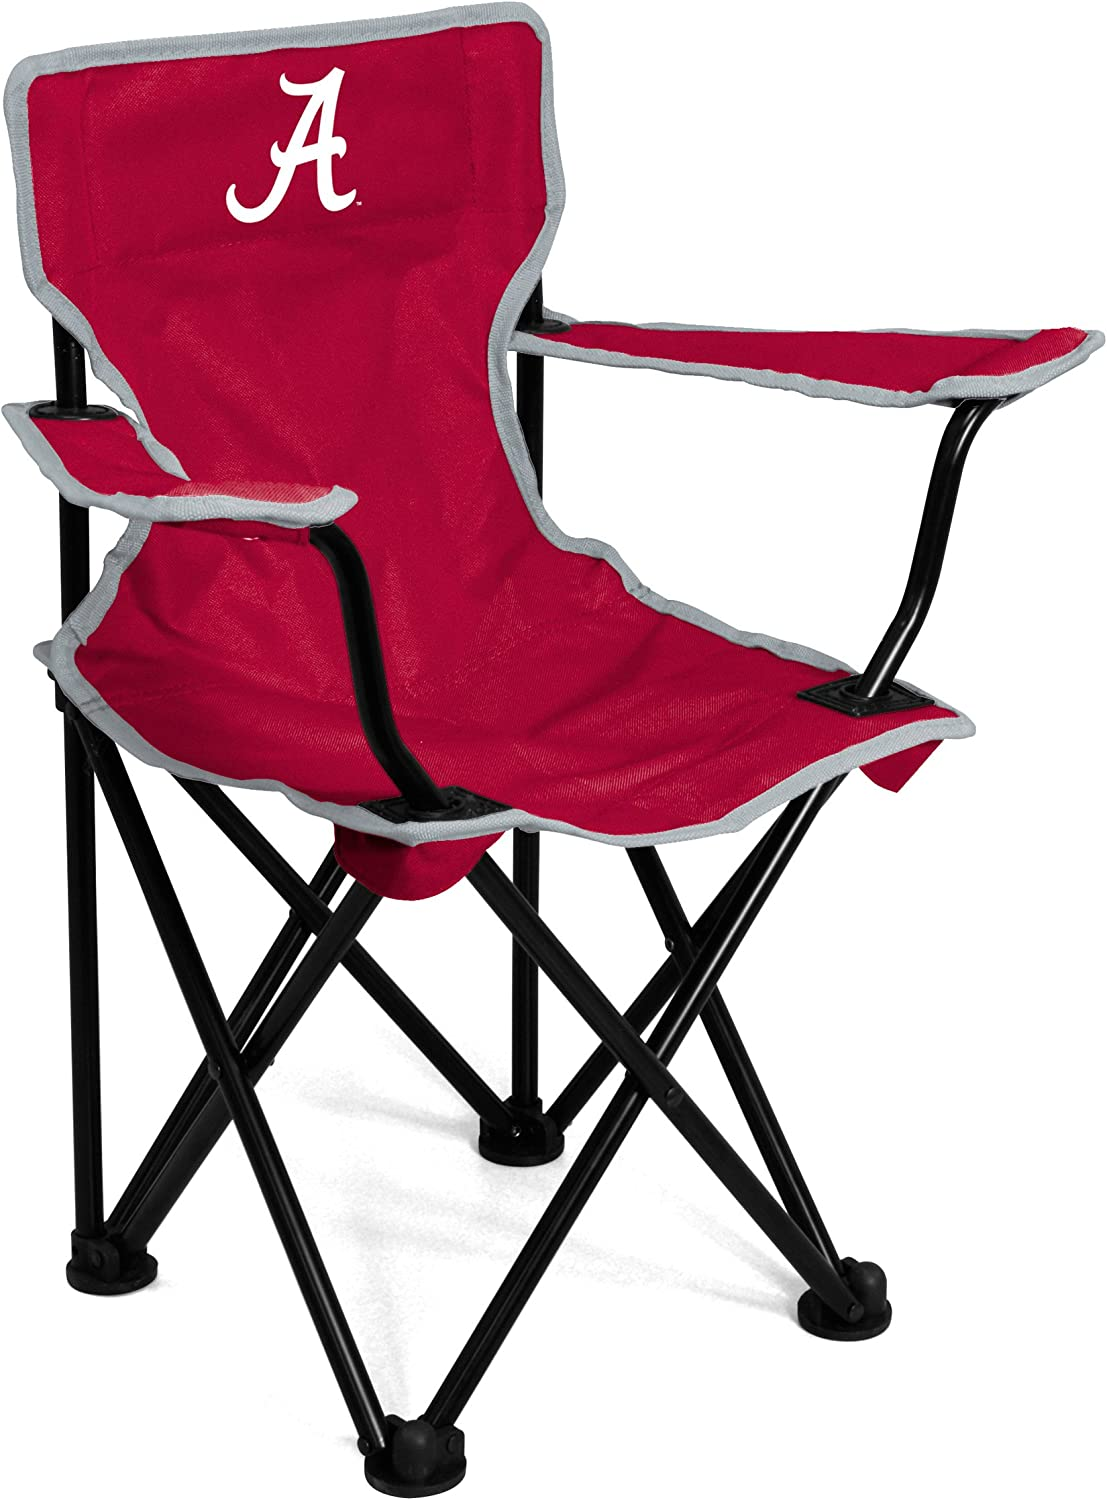 One Size Multicolor Logo Brands NCAA Unisex Toddler Chair